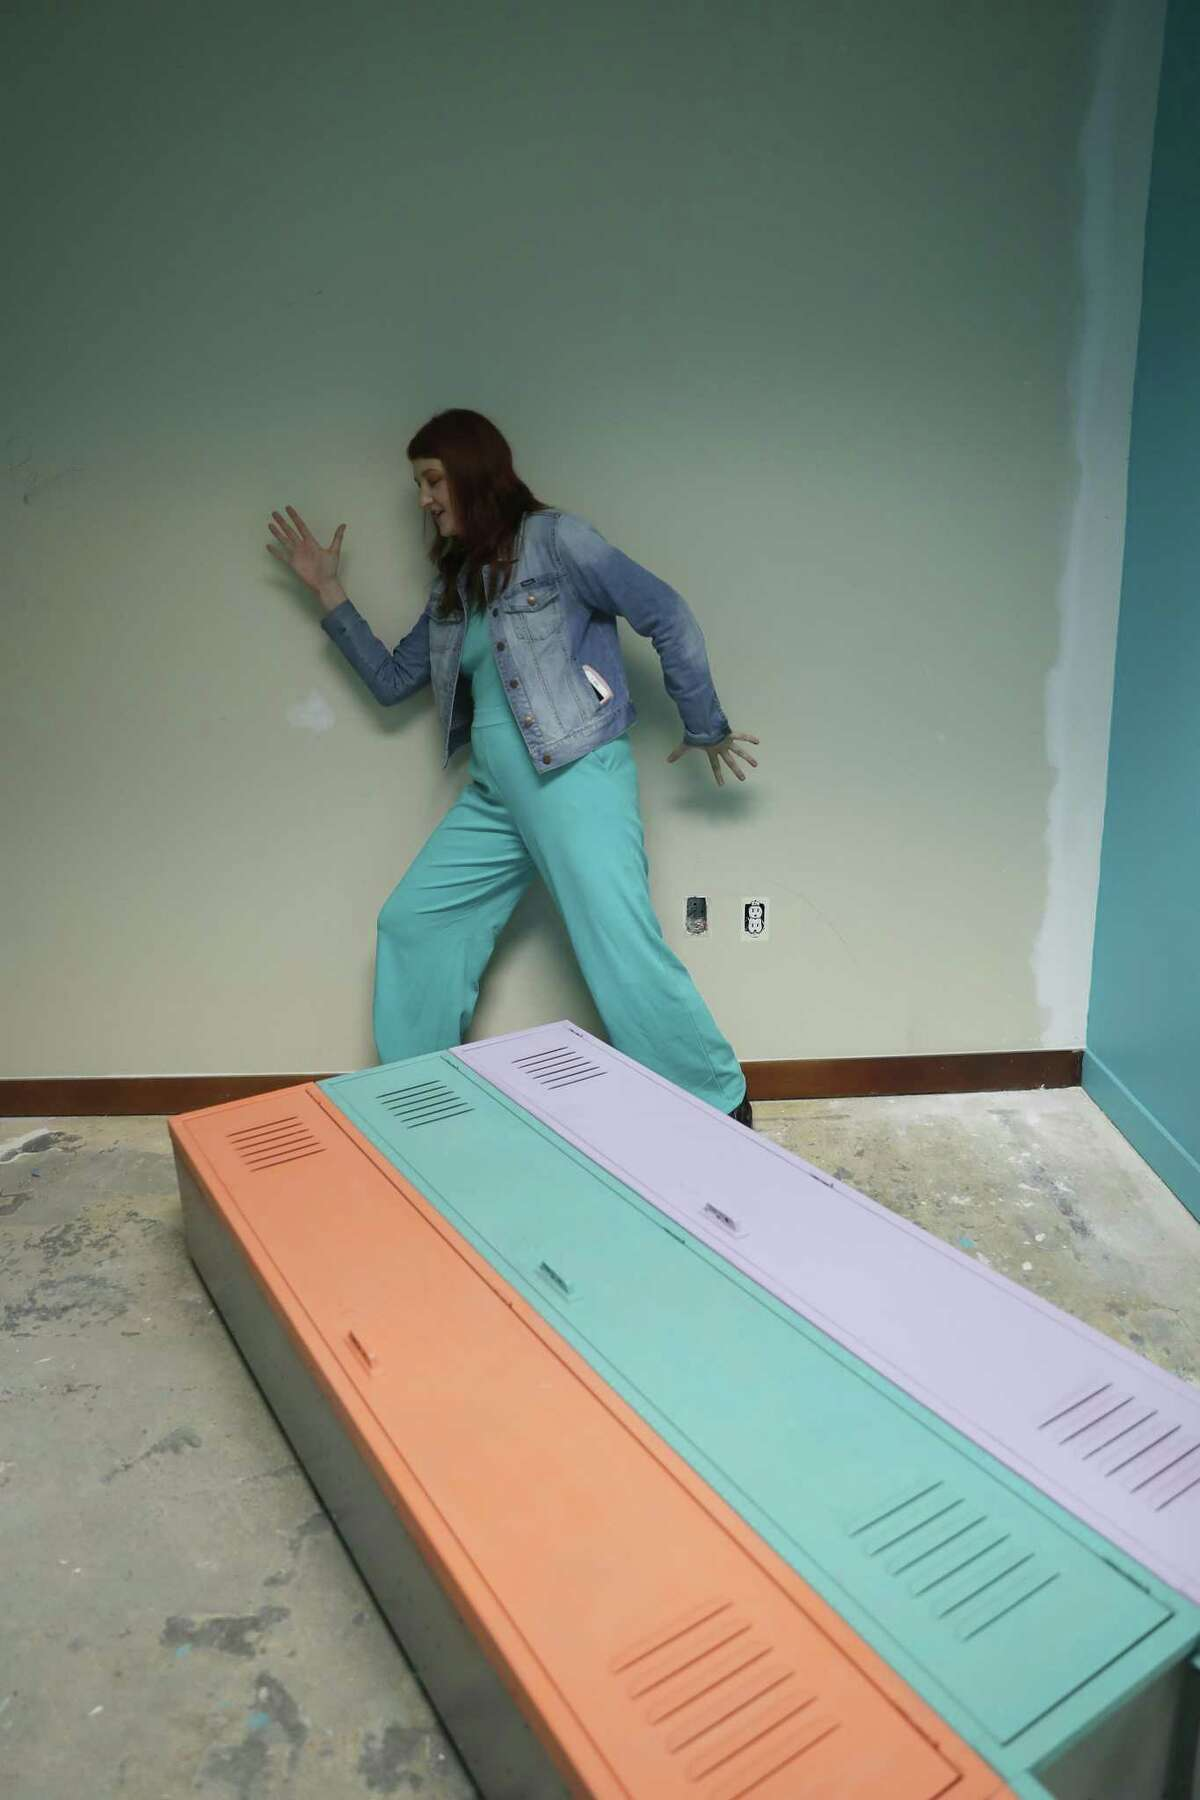 """FOMO Factory founder Rachel Youens demonstrates how a wall in the """"glow room"""" will work while on a tour in the FOMO Factory under construction in the Galleria mall, in Houston , Thursday, May 2, 2019. FOMO Factory was formerly in Austin, and is set to open in Houston in June. Malls and department stores are incorporating Instagrammable, experiential retail to draw customers in the age of Amazon."""